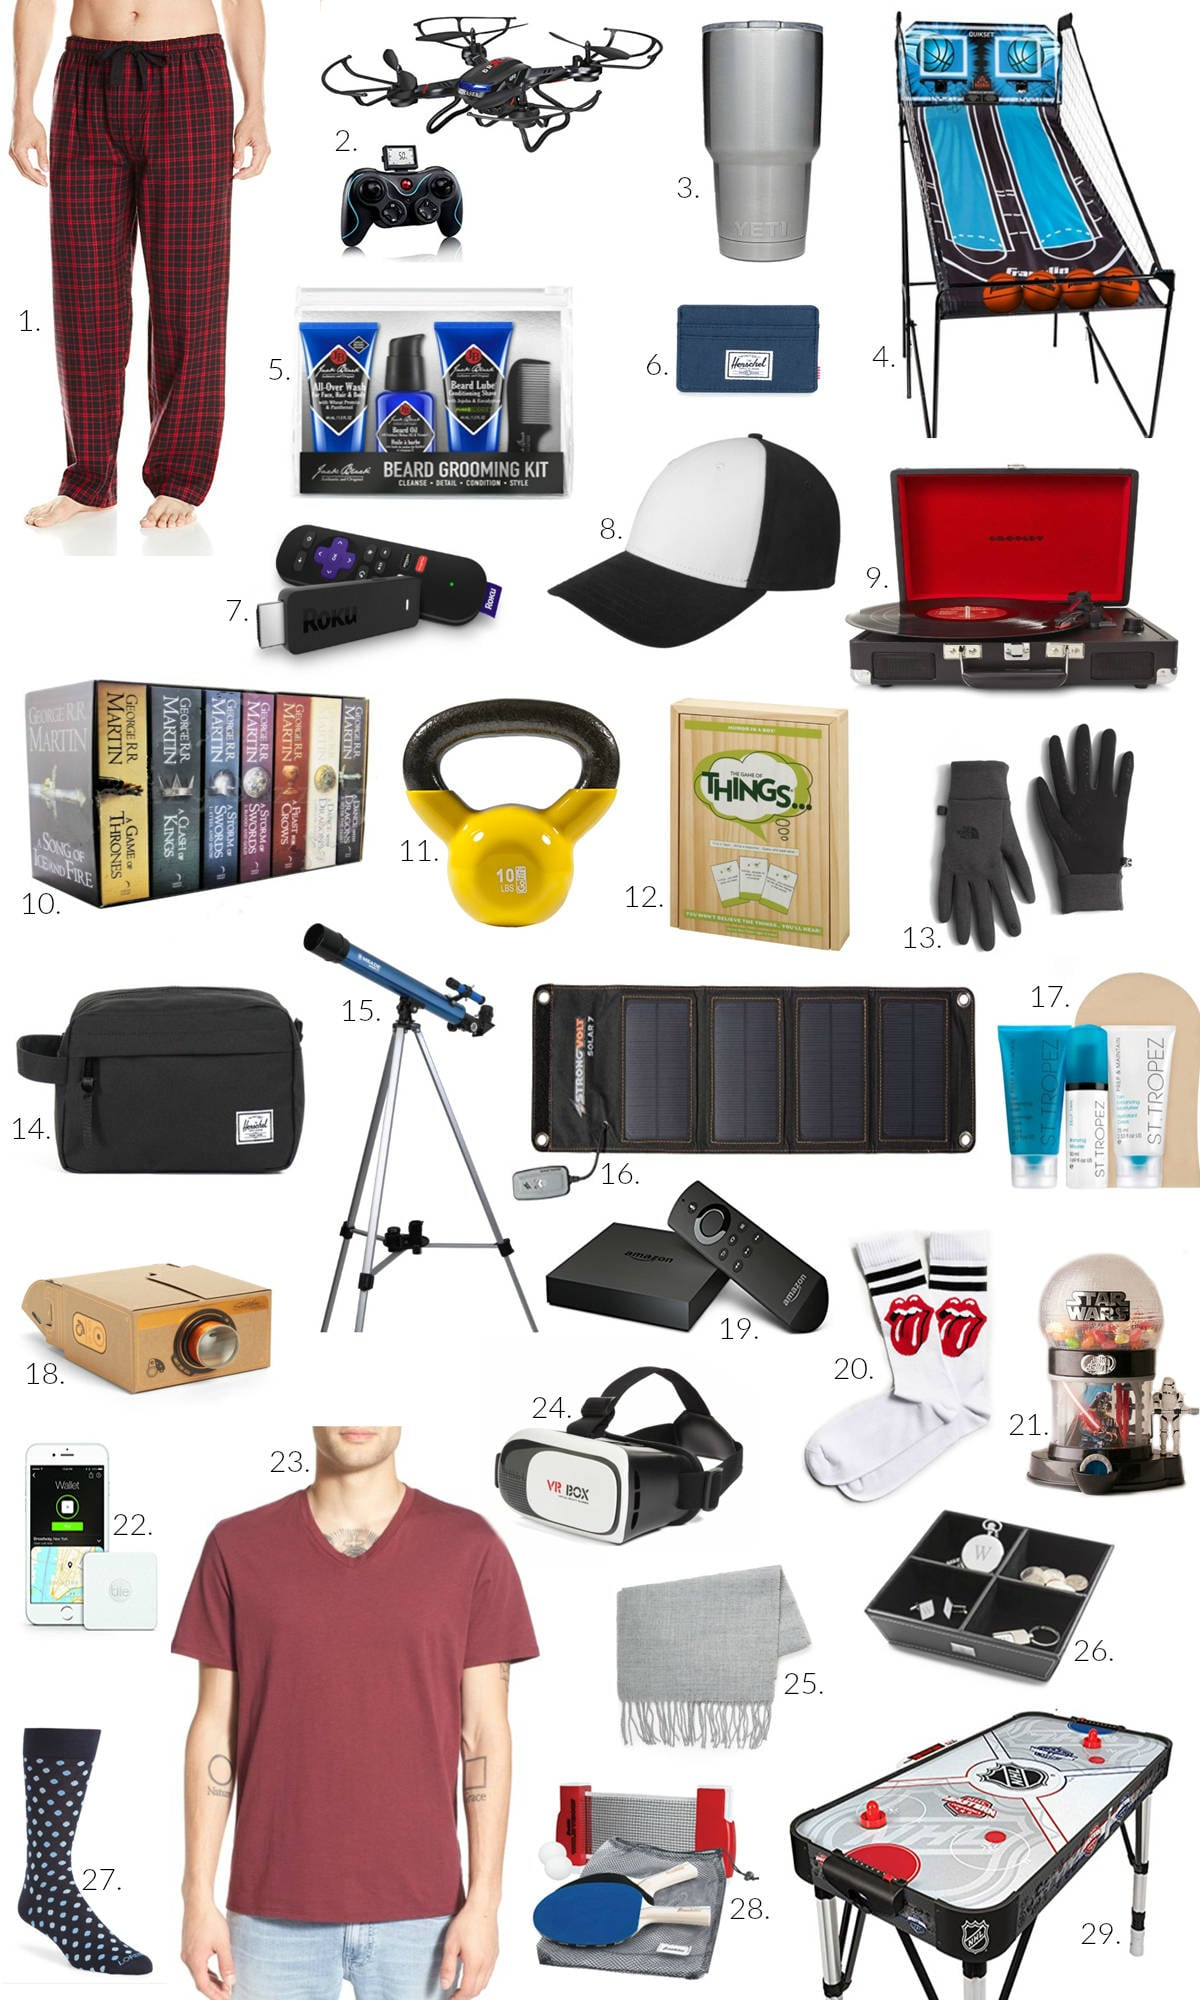 A Christmas Gifts For Men  Gift Ideas For Him Under $100